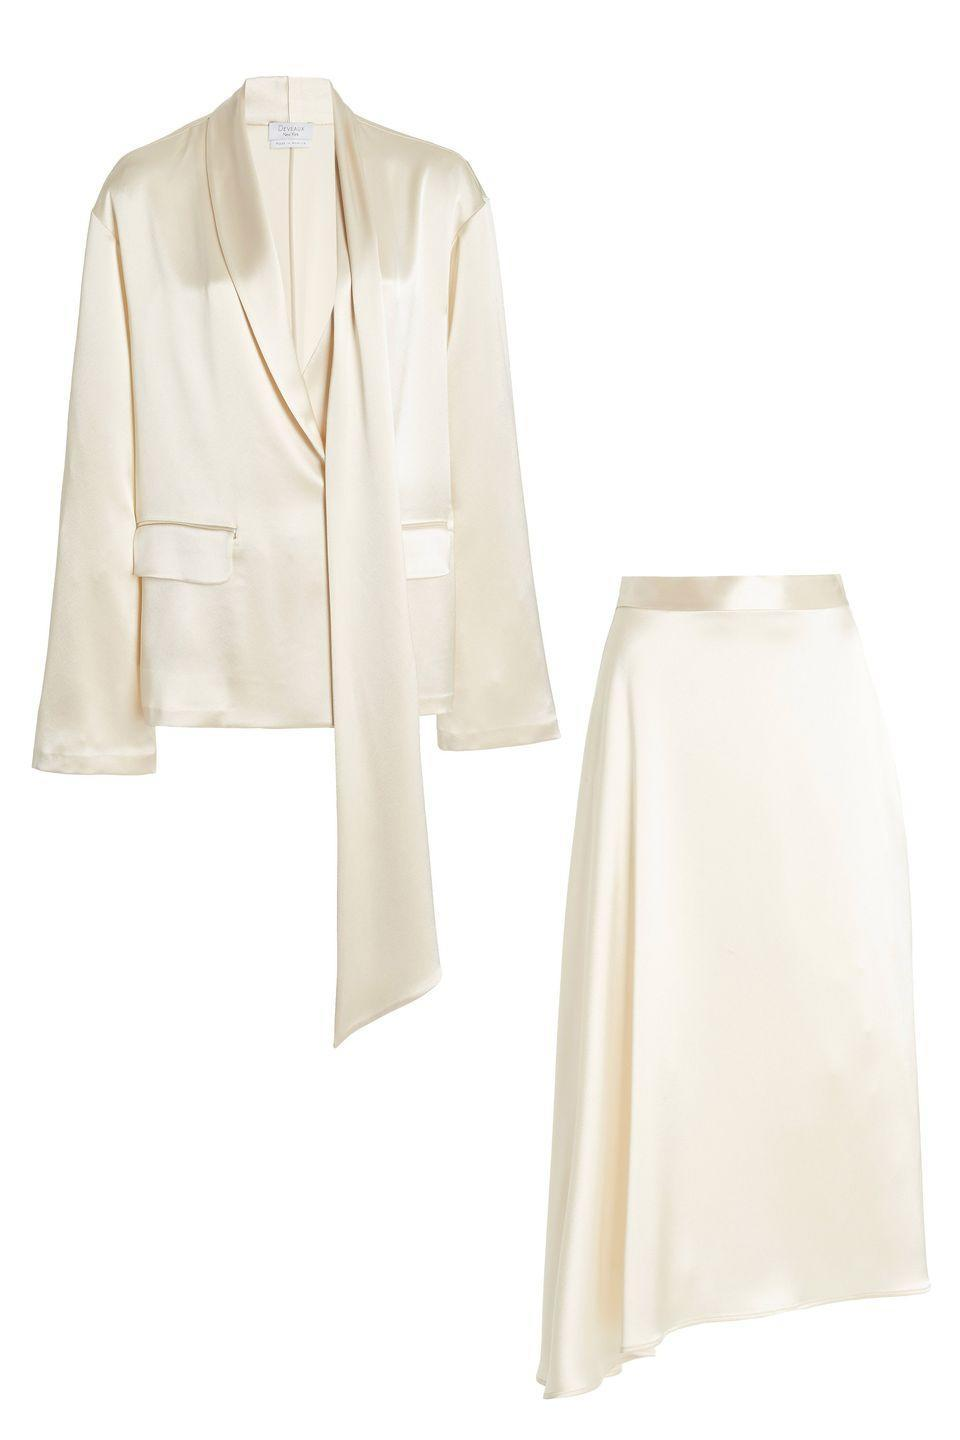 "<p>A midi skirt paired with a coordinating jacket is a chic, fresh take on the mod skirt suit. This one in satin would feel sexy with a sky-high heel, and dainty for daytime with a slide, mule, or flat.</p><p><em>Sheila blazer, $795, <a href=""https://www.modaoperandi.com/women/p/deveaux/sheila-draped-oversized-satin-blazer/443857"" rel=""nofollow noopener"" target=""_blank"" data-ylk=""slk:modaoperandi.com"" class=""link rapid-noclick-resp"">modaoperandi.com</a></em> <a class=""link rapid-noclick-resp"" href=""https://go.redirectingat.com?id=74968X1596630&url=https%3A%2F%2Fwww.modaoperandi.com%2Fwomen%2Fp%2Fdeveaux%2Fsheila-draped-oversized-satin-blazer%2F443857&sref=https%3A%2F%2Fwww.harpersbazaar.com%2Fwedding%2Fbridal-fashion%2Fg35154193%2Fbest-wedding-suits-for-women%2F"" rel=""nofollow noopener"" target=""_blank"" data-ylk=""slk:SHOP"">SHOP</a></p><p><em>Merel skirt, $695, <a href=""https://www.modaoperandi.com/women/p/deveaux/merel-asymmetric-draped-satin-midi-skirt/443858"" rel=""nofollow noopener"" target=""_blank"" data-ylk=""slk:modaoperandi.com"" class=""link rapid-noclick-resp"">modaoperandi.com</a></em> <a class=""link rapid-noclick-resp"" href=""https://go.redirectingat.com?id=74968X1596630&url=https%3A%2F%2Fwww.modaoperandi.com%2Fwomen%2Fp%2Fdeveaux%2Fmerel-asymmetric-draped-satin-midi-skirt%2F443858&sref=https%3A%2F%2Fwww.harpersbazaar.com%2Fwedding%2Fbridal-fashion%2Fg35154193%2Fbest-wedding-suits-for-women%2F"" rel=""nofollow noopener"" target=""_blank"" data-ylk=""slk:SHOP"">SHOP</a></p>"